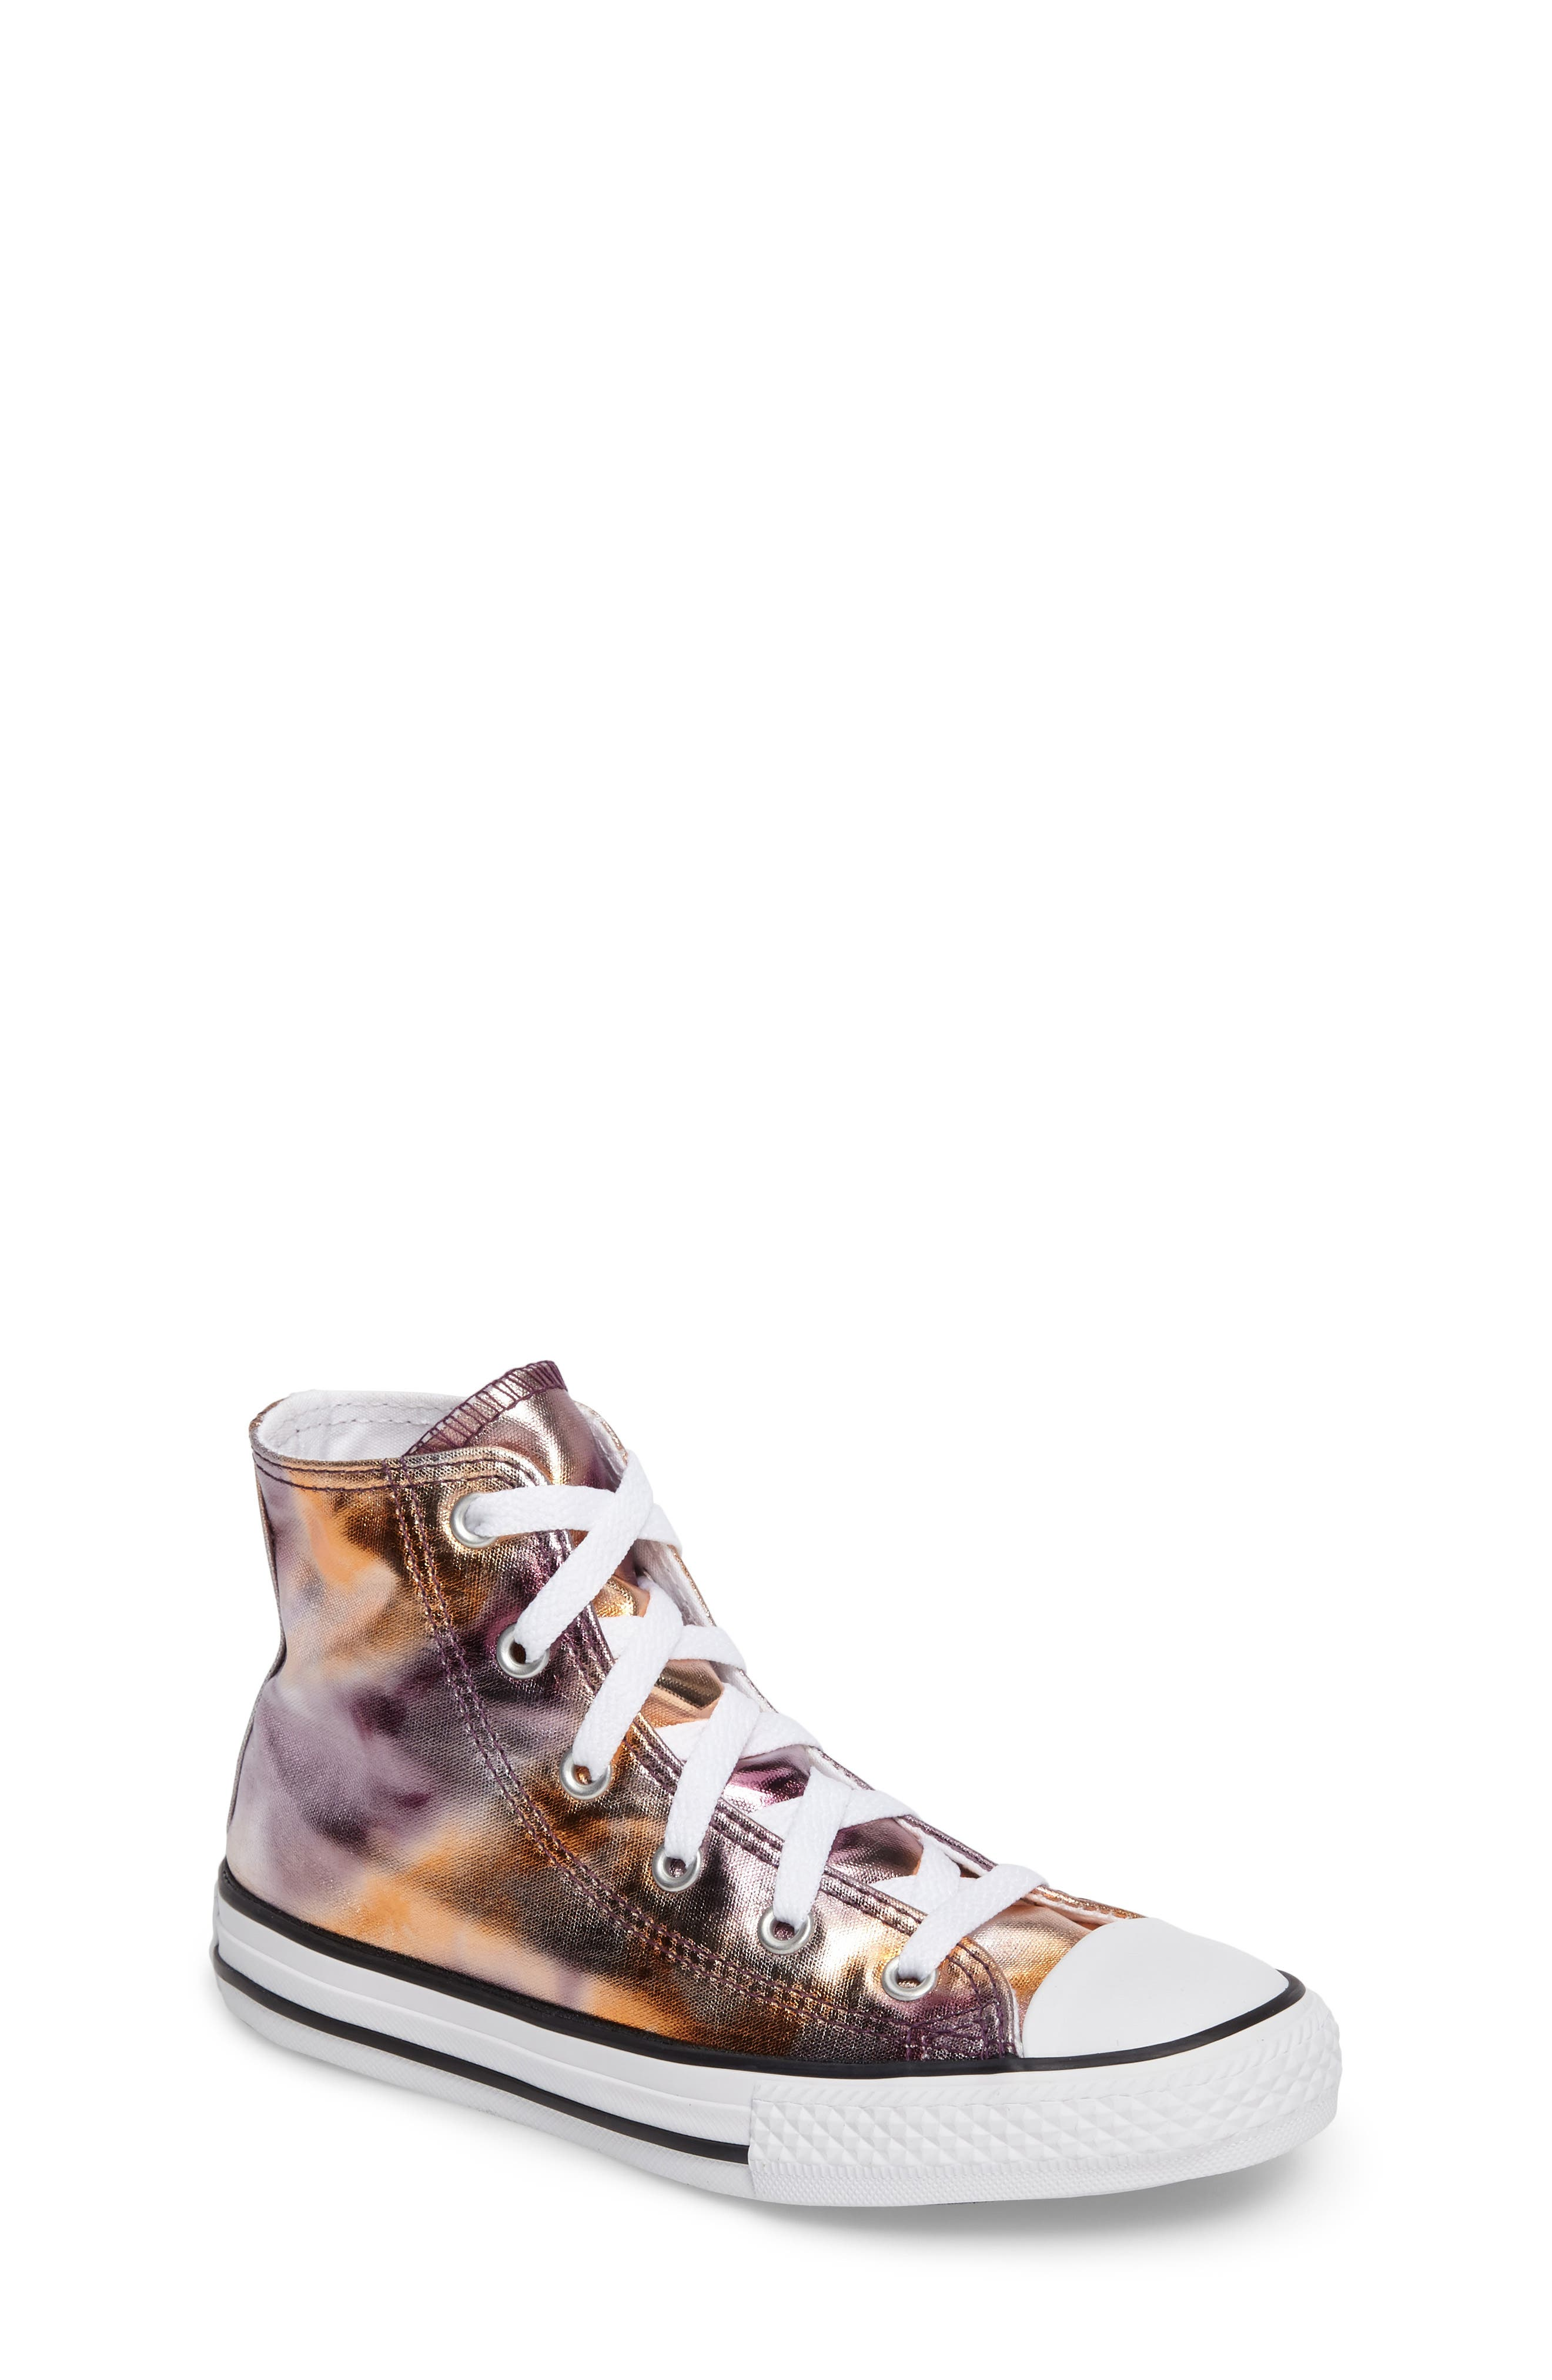 Chuck Taylor<sup>®</sup> All Star<sup>®</sup> Metallic High Top Sneaker,                         Main,                         color, 220